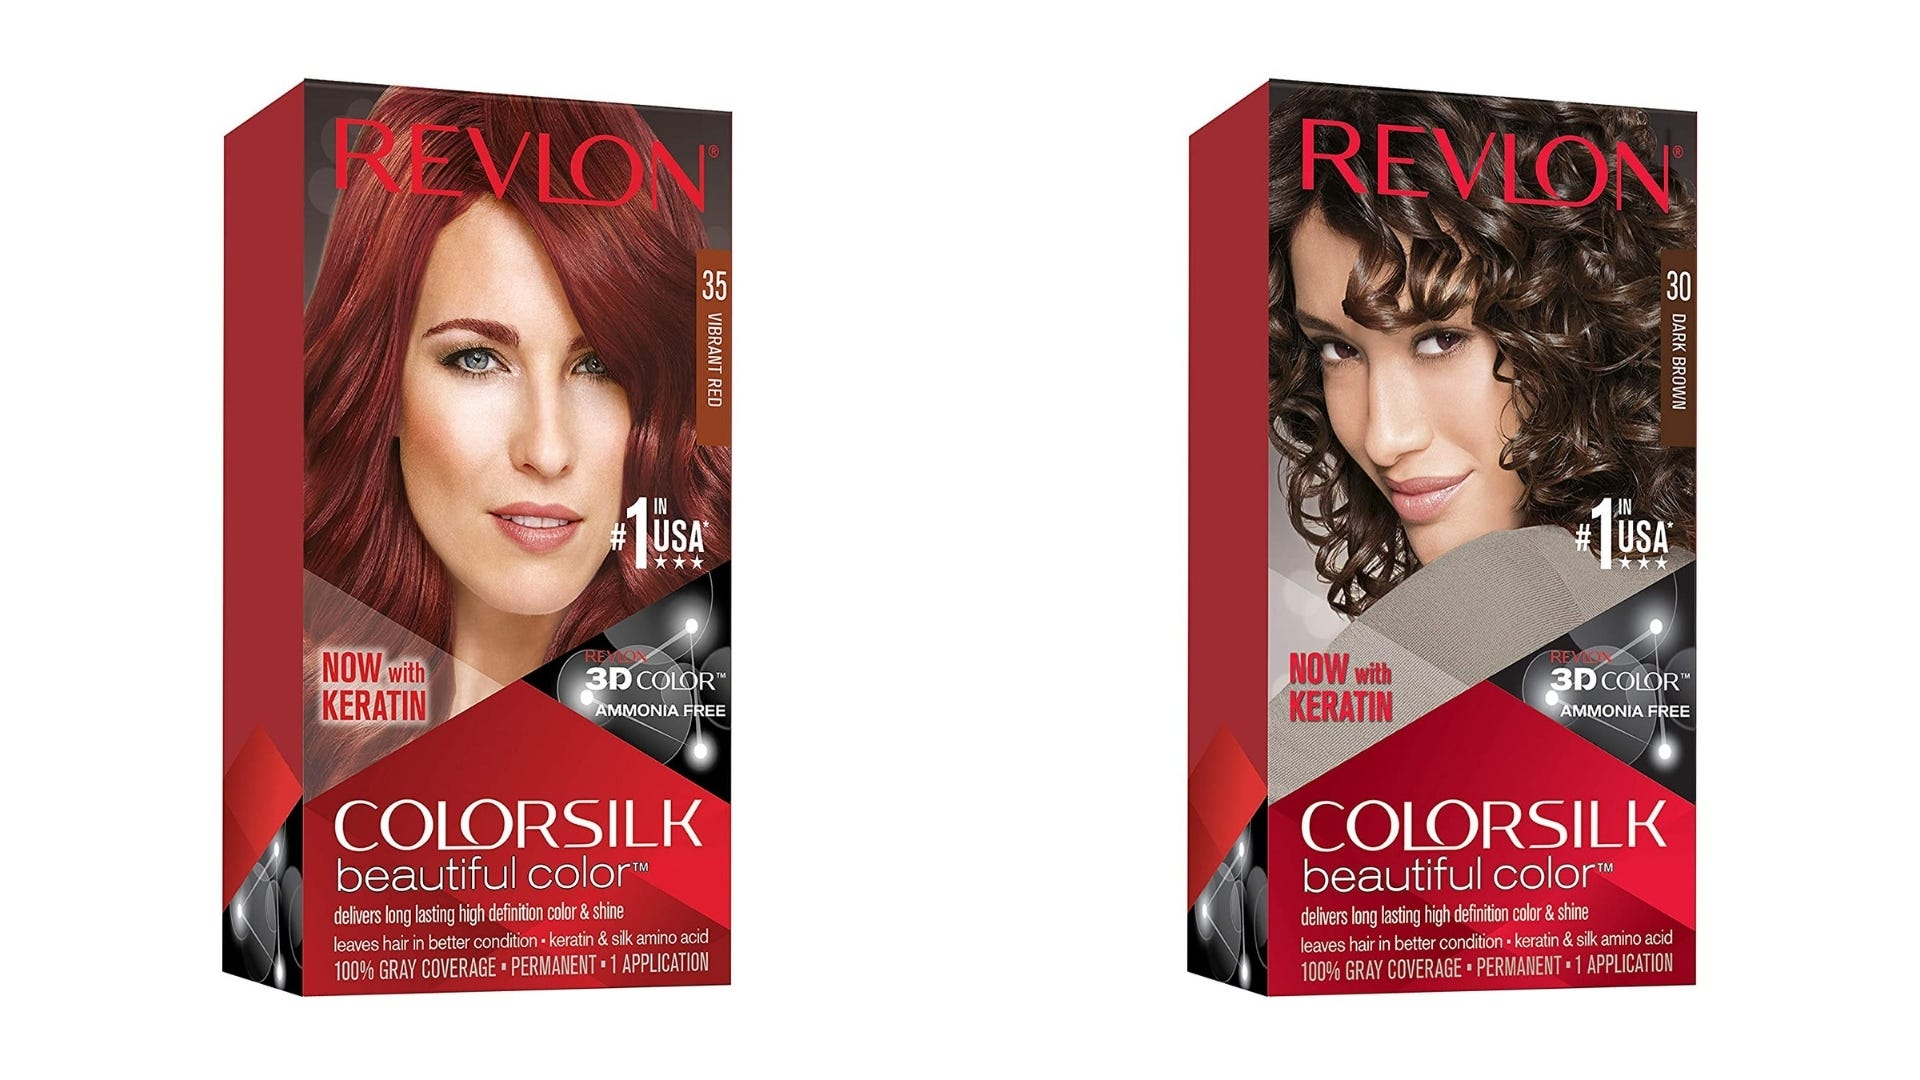 Two boxes of Revlon hair dye